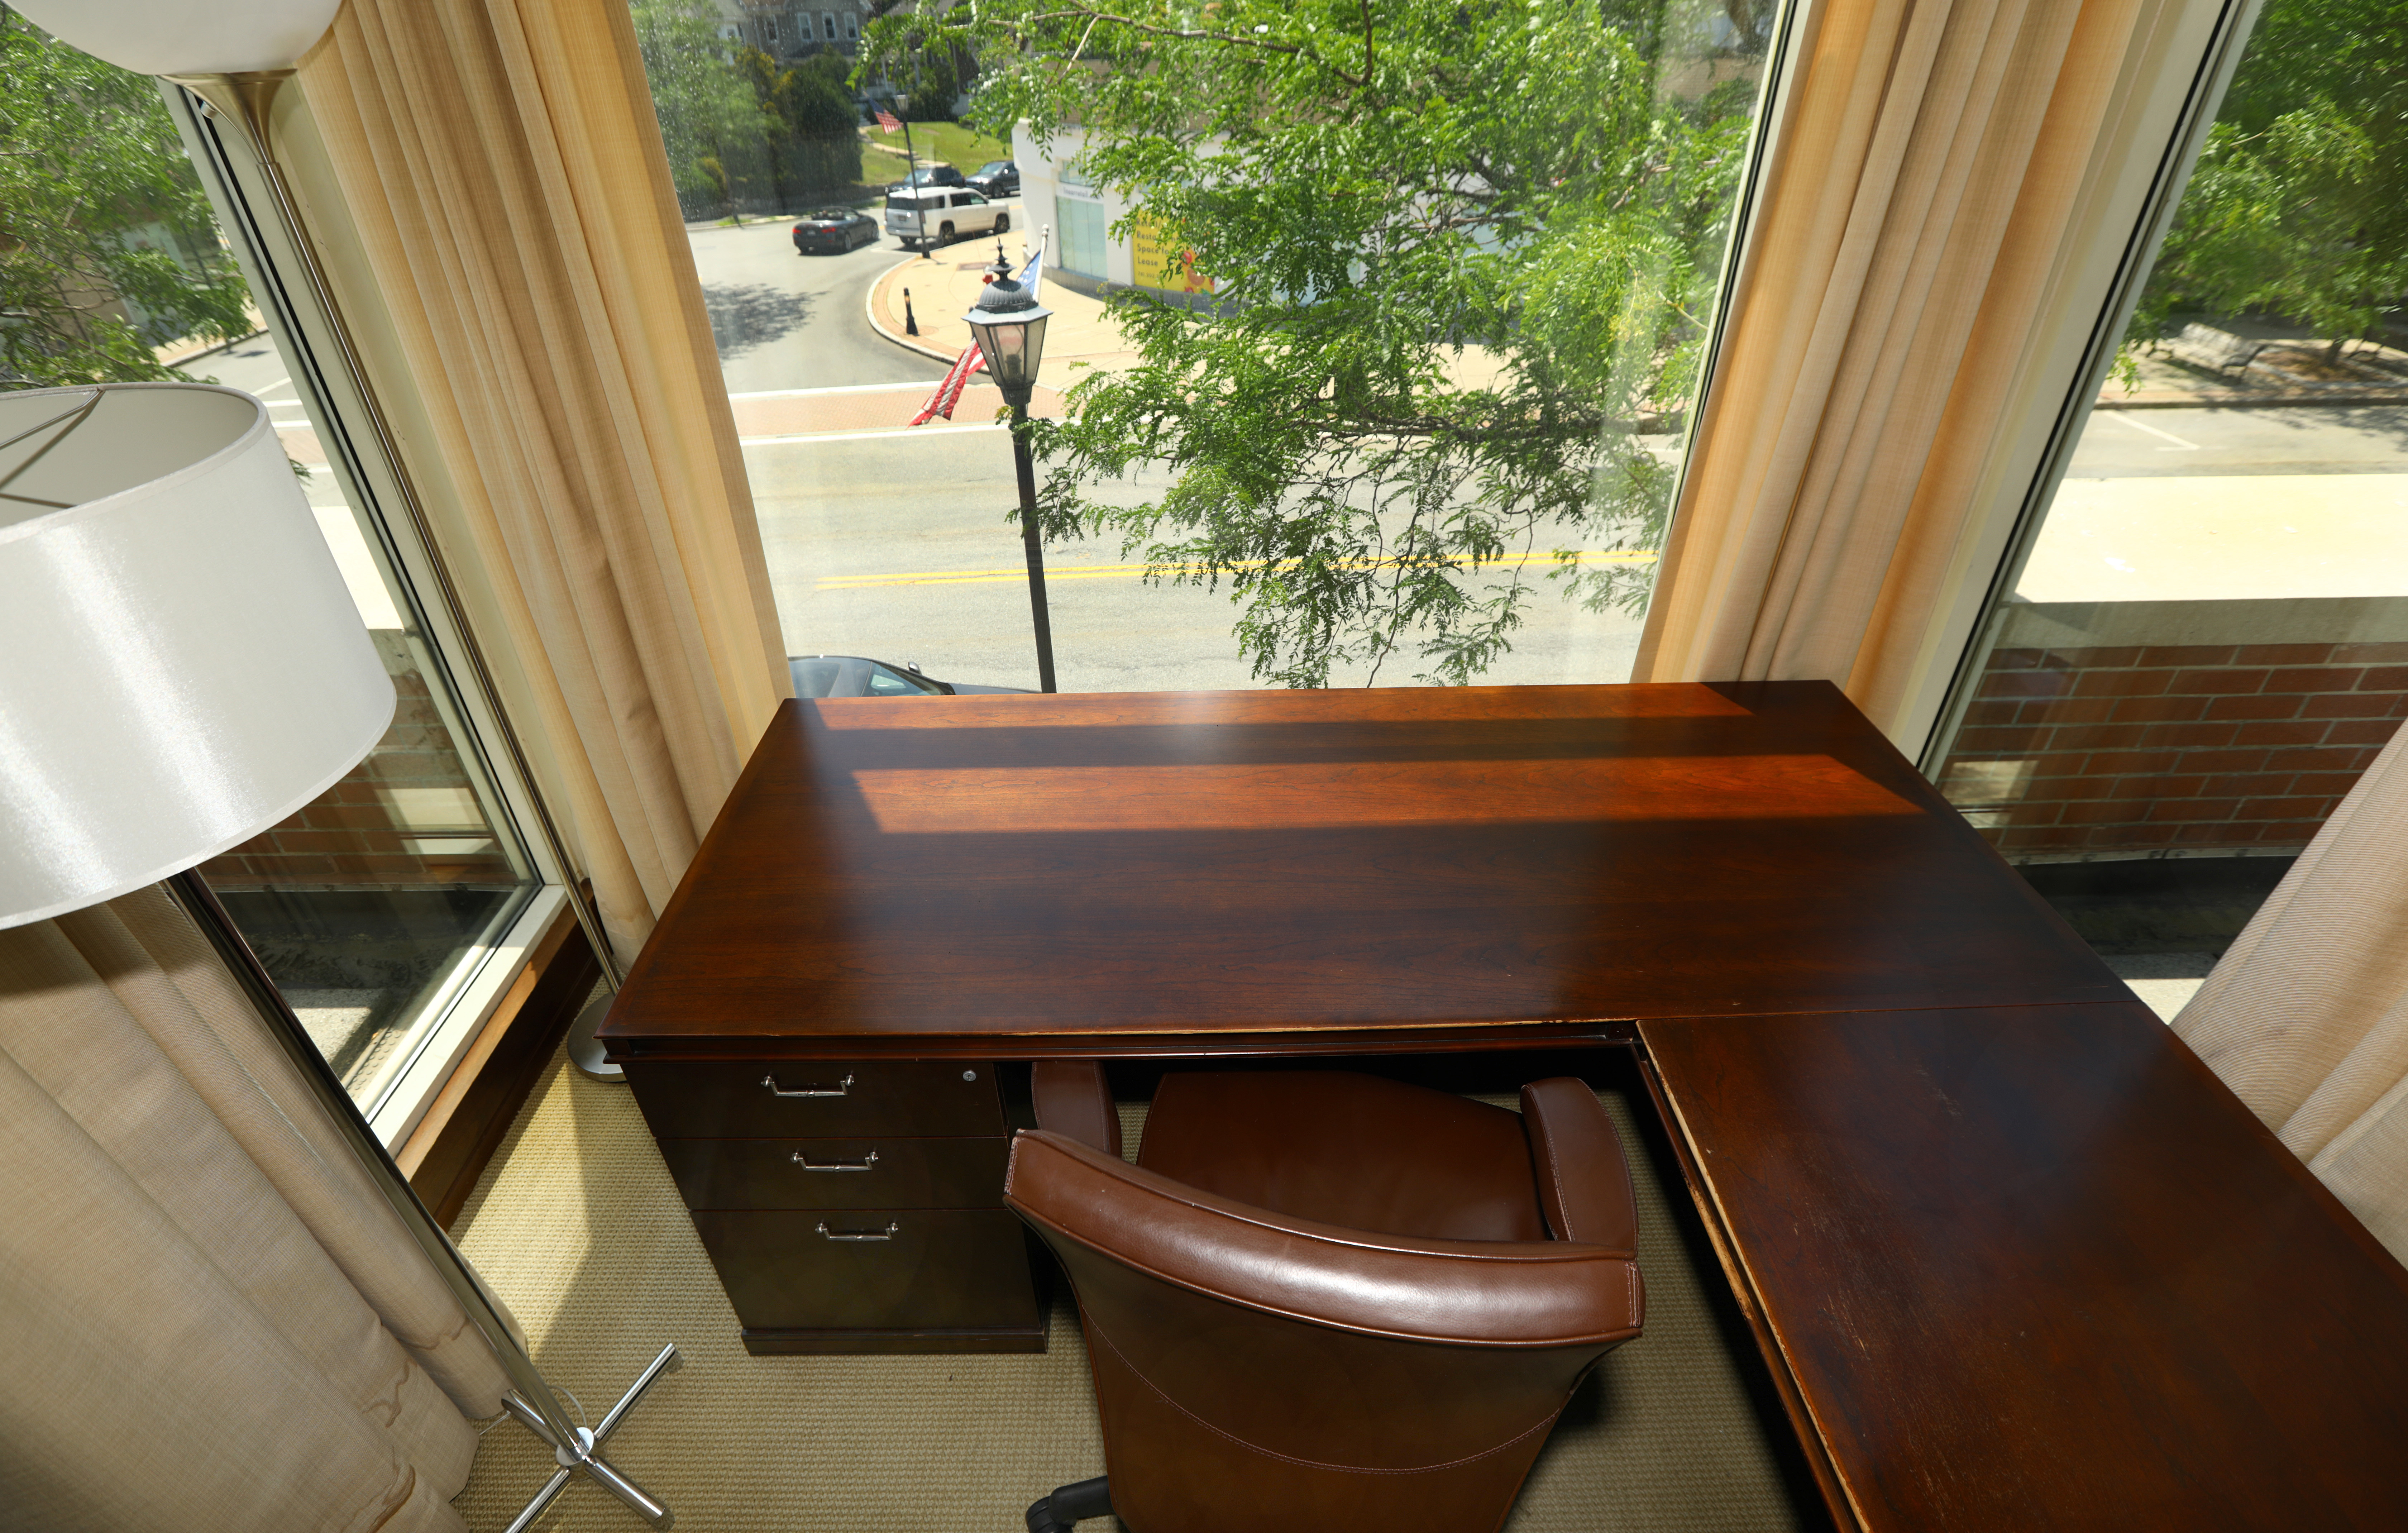 At LocalWorks in Wellesley, people can rent space instead of working from home.